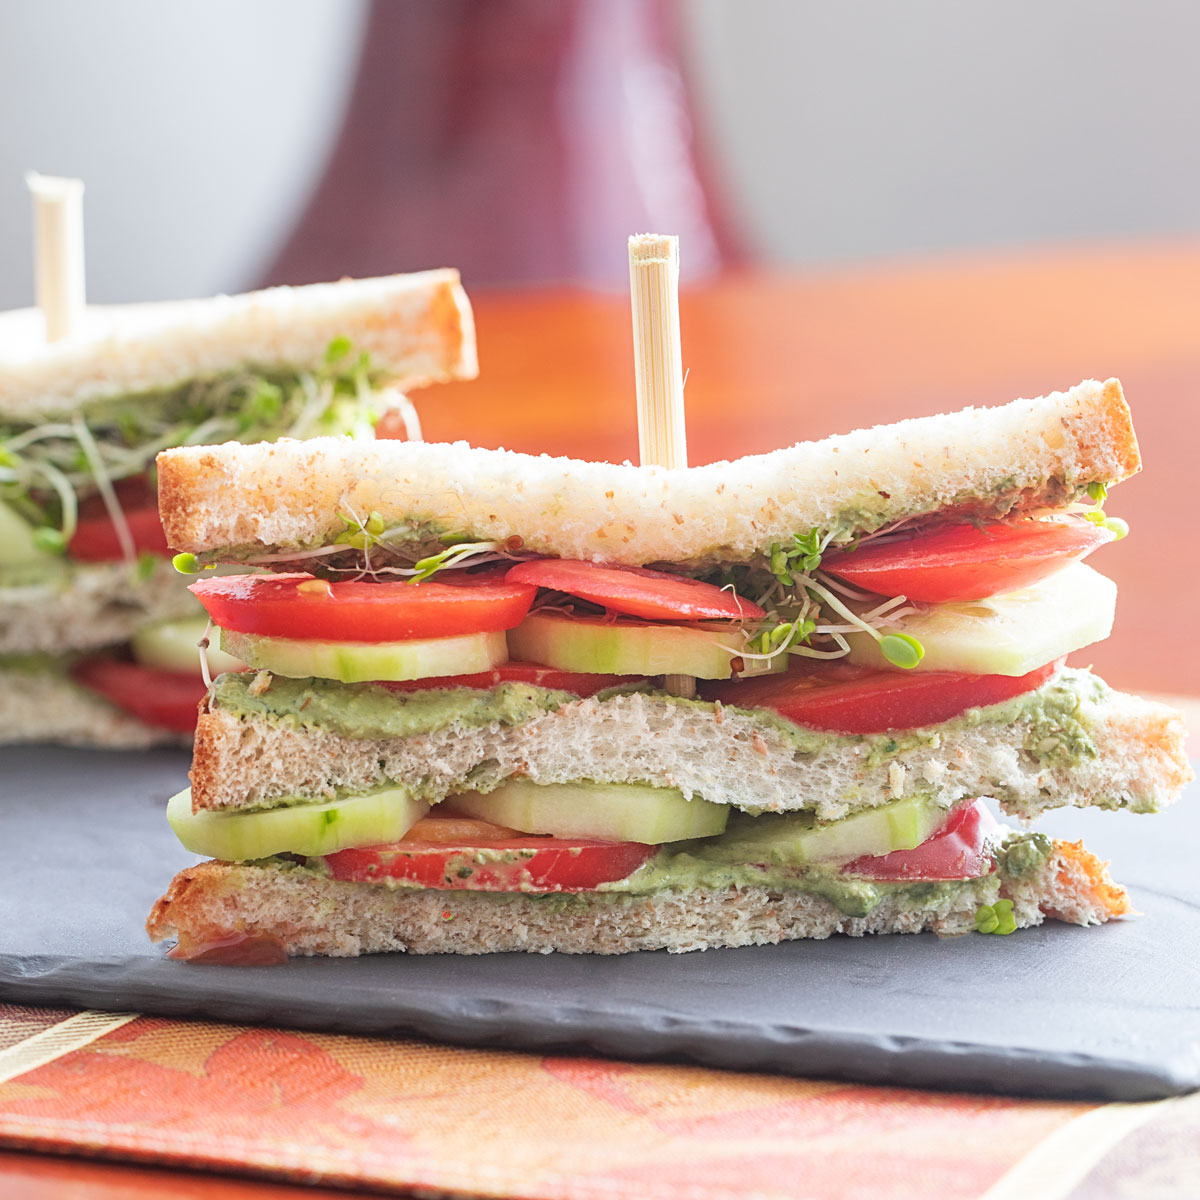 Closeup view of a double decker tomato sandwich with layers of tomato, cucumber, pesto spread and broccoli sprouts